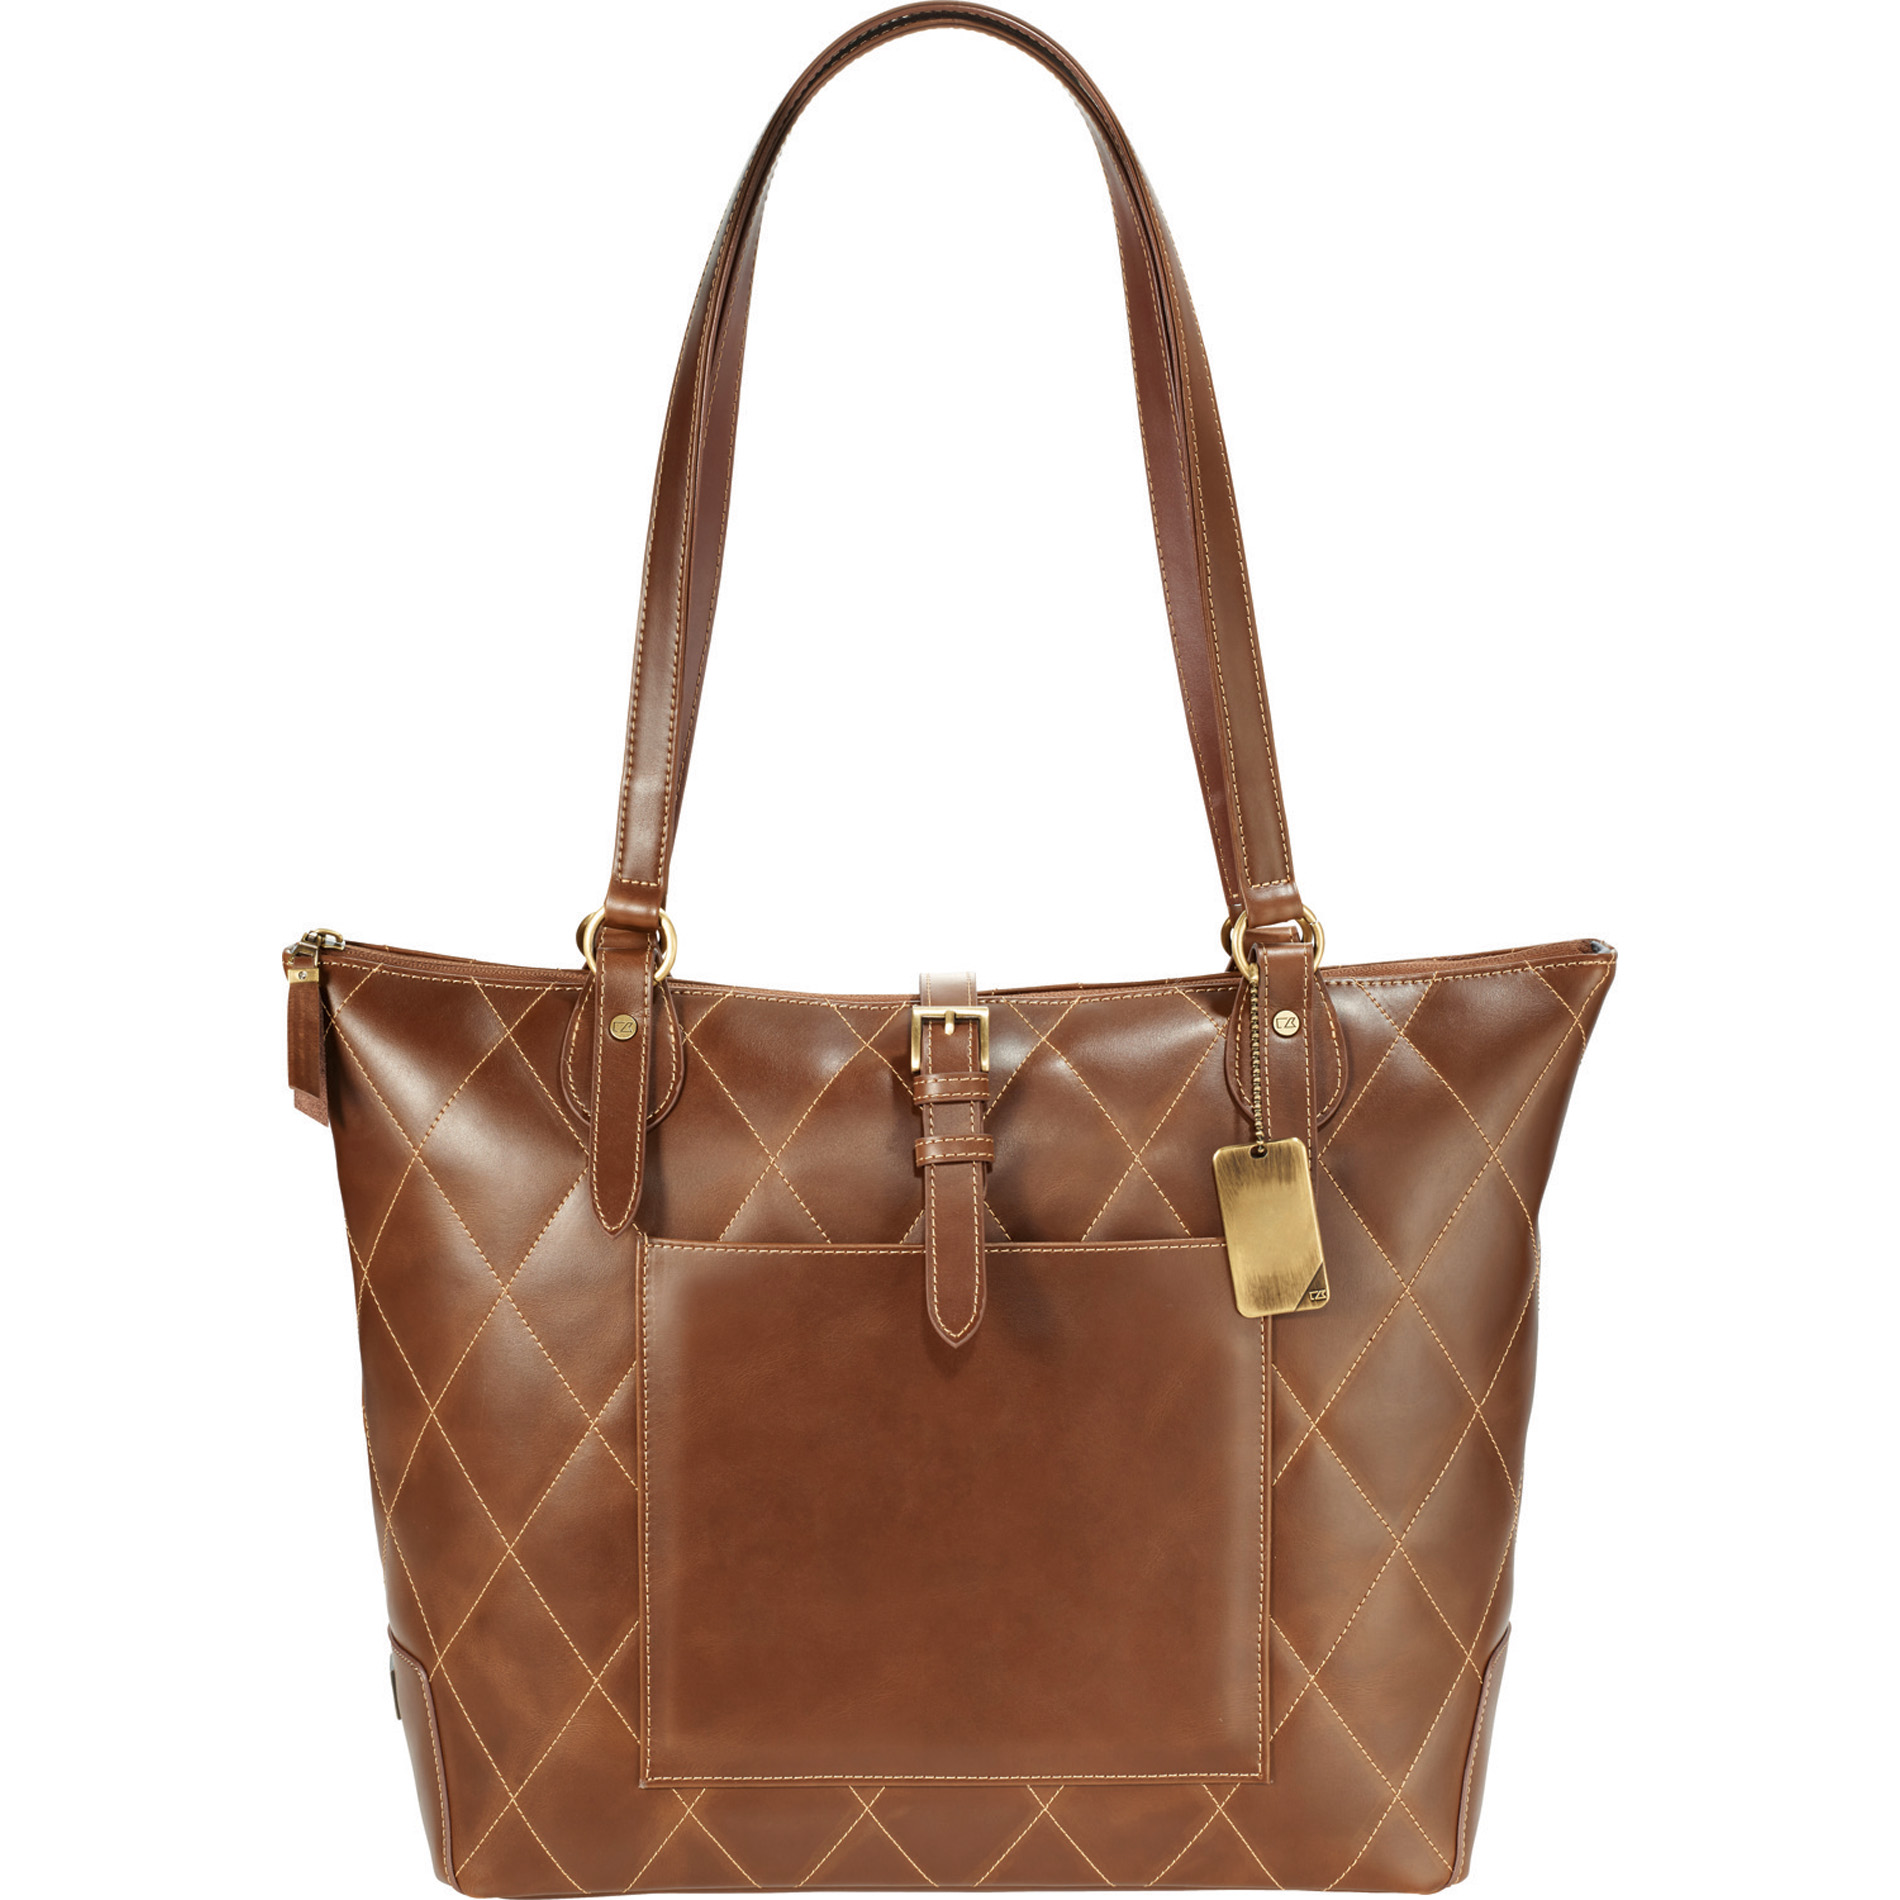 Cutter & Buck 9840-47 - Bainbridge Quilted Leather Tote